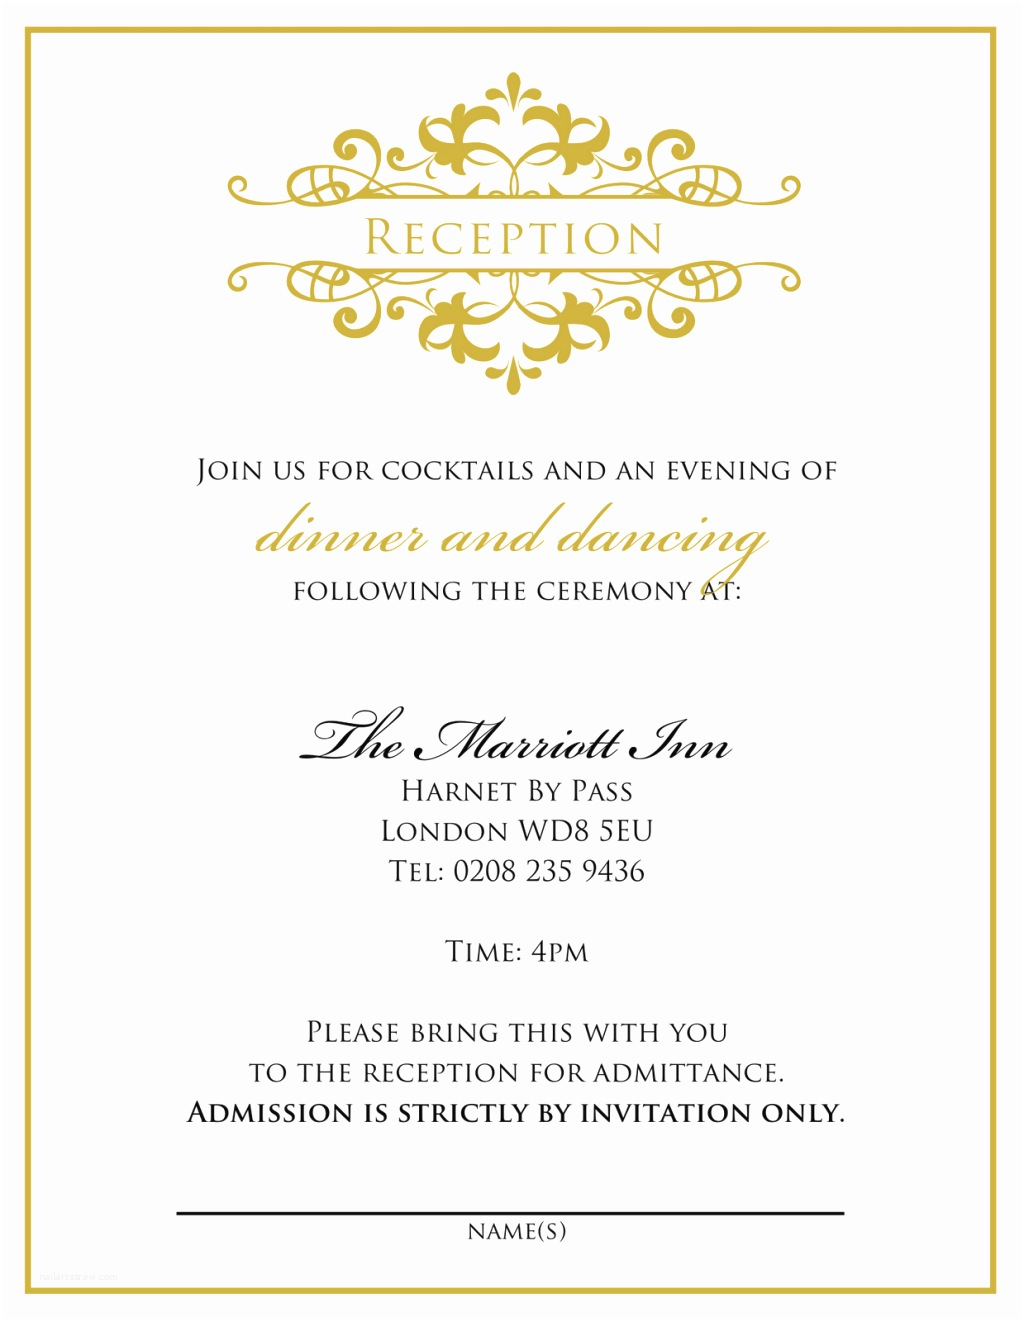 Indian Wedding Reception Invitation Wording Samples Bride Groom Wedding Invitation Wording by Bride and Groom Indian